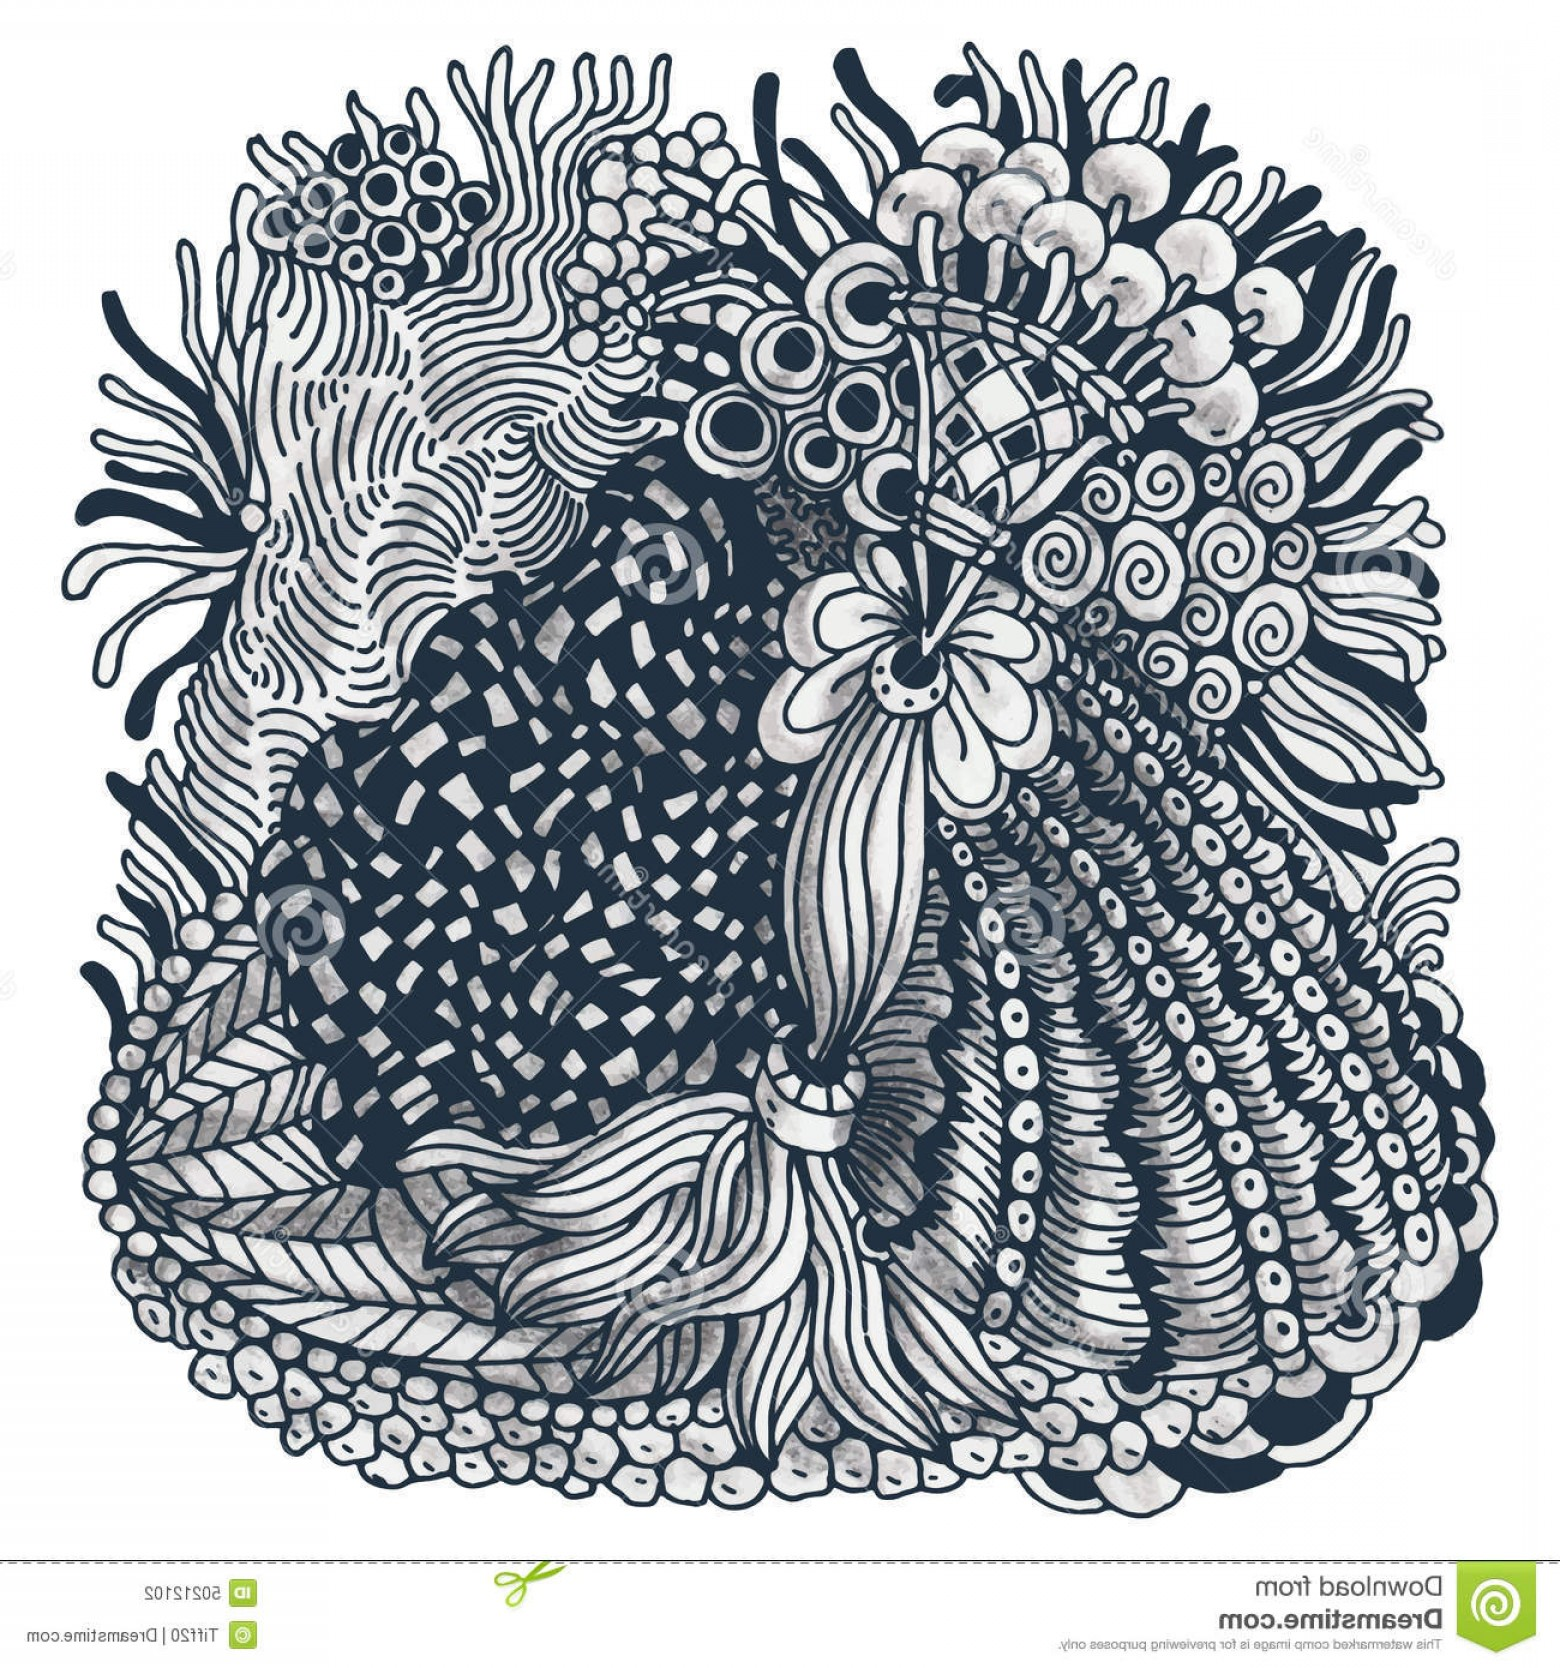 Zentangle Vector: Stock Illustration Zentangle Detailed Hand Drawn Monochrome Illustration Vector Image